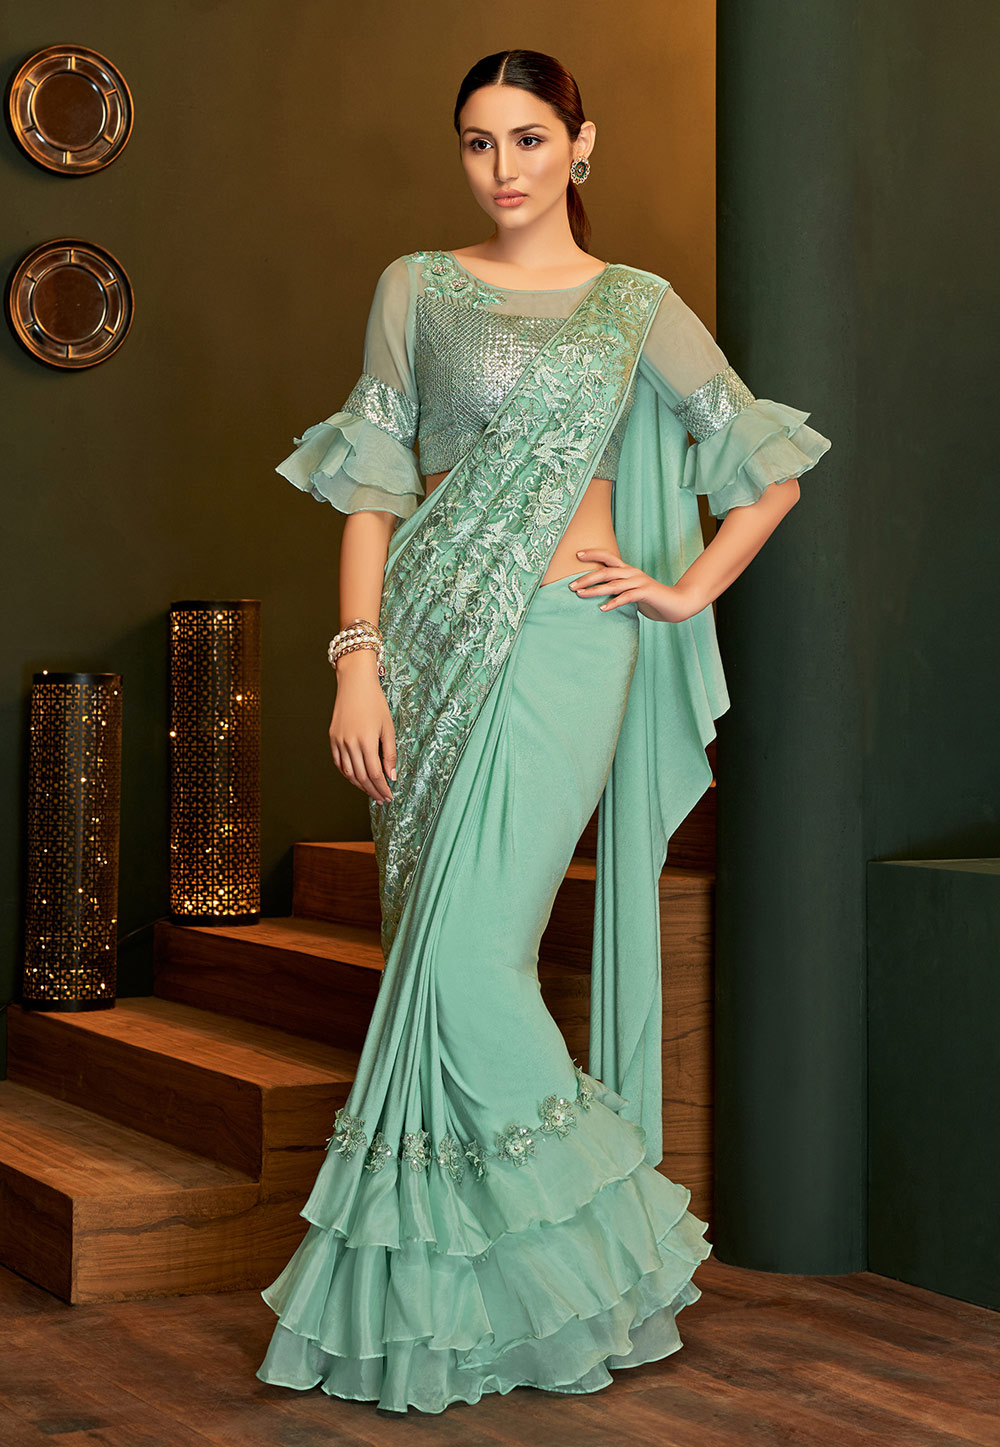 Sea Green Lycra Frilled Party Wear Saree 201669